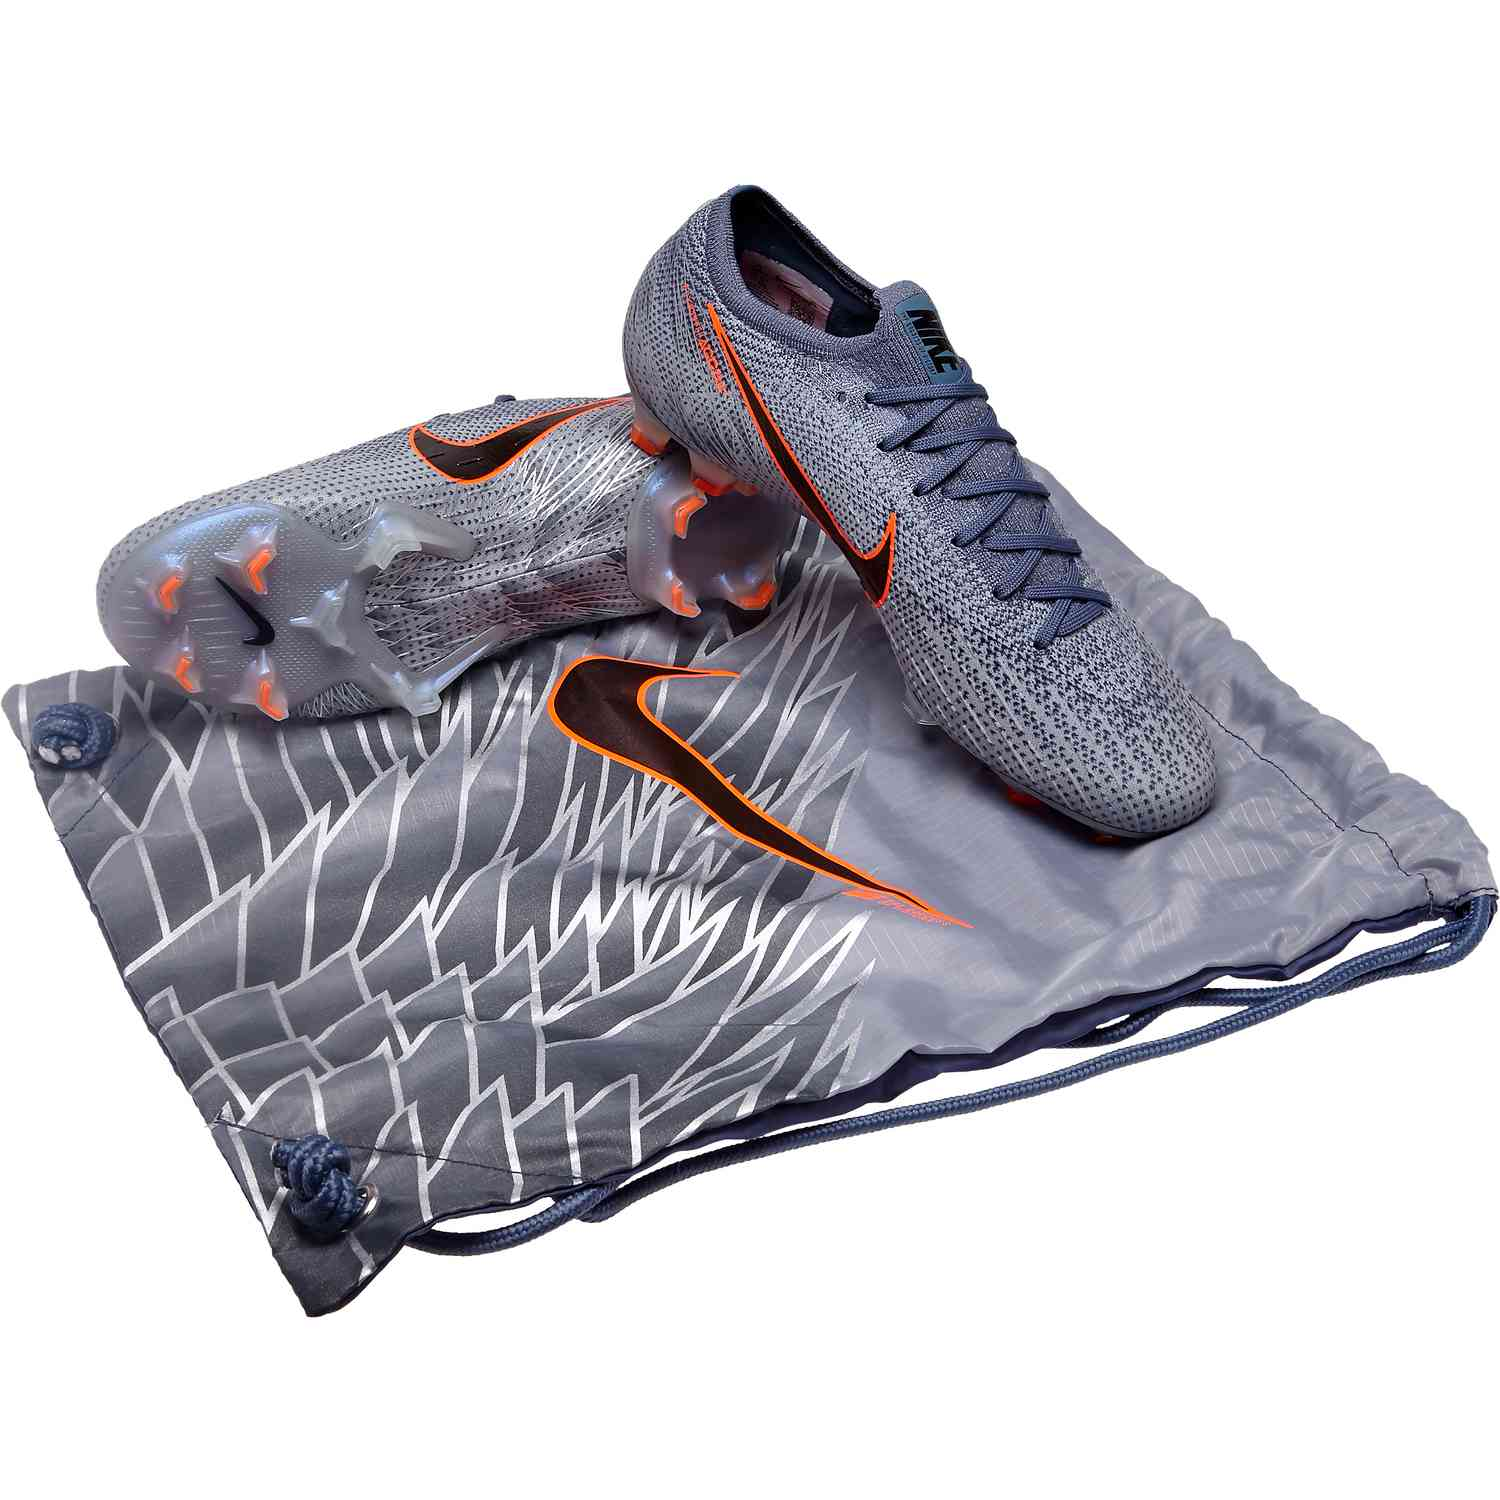 Nike Victory Pack | Get your pair on